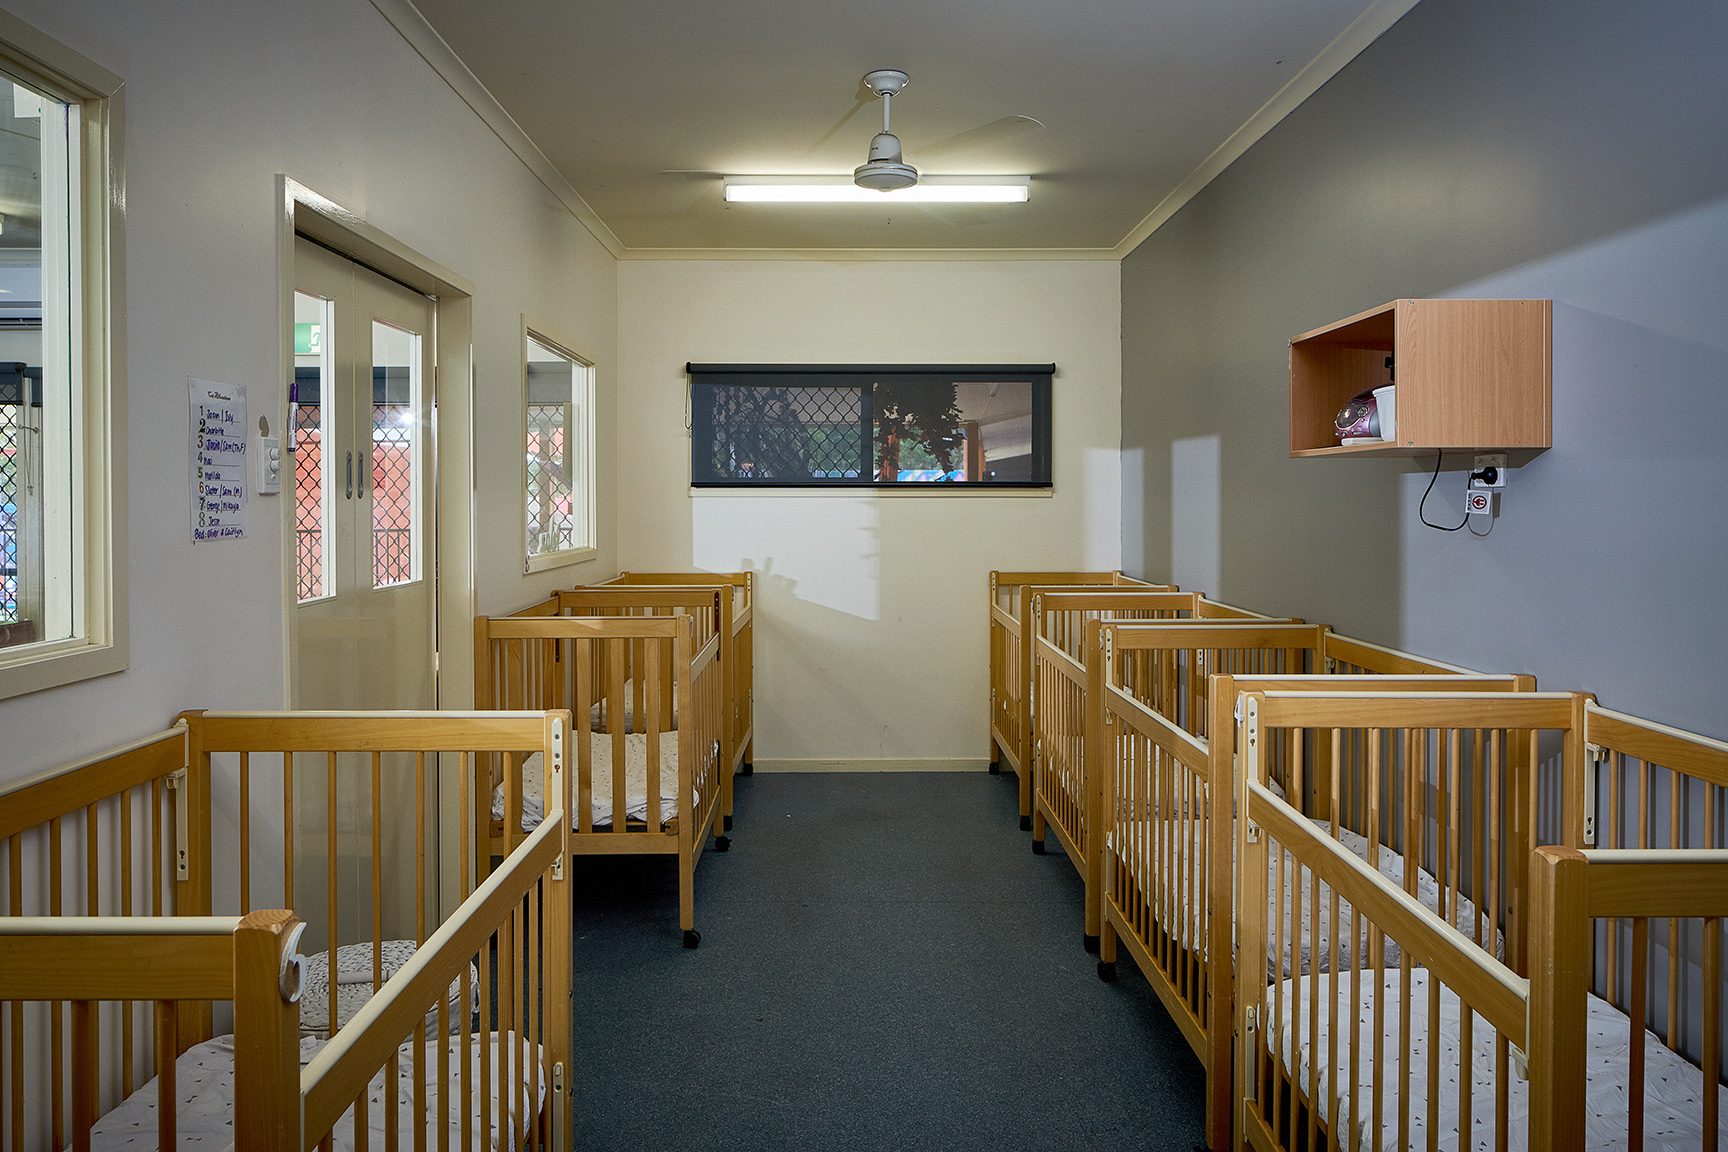 Nursery room with cots at Tadpoles Pacific Paradise